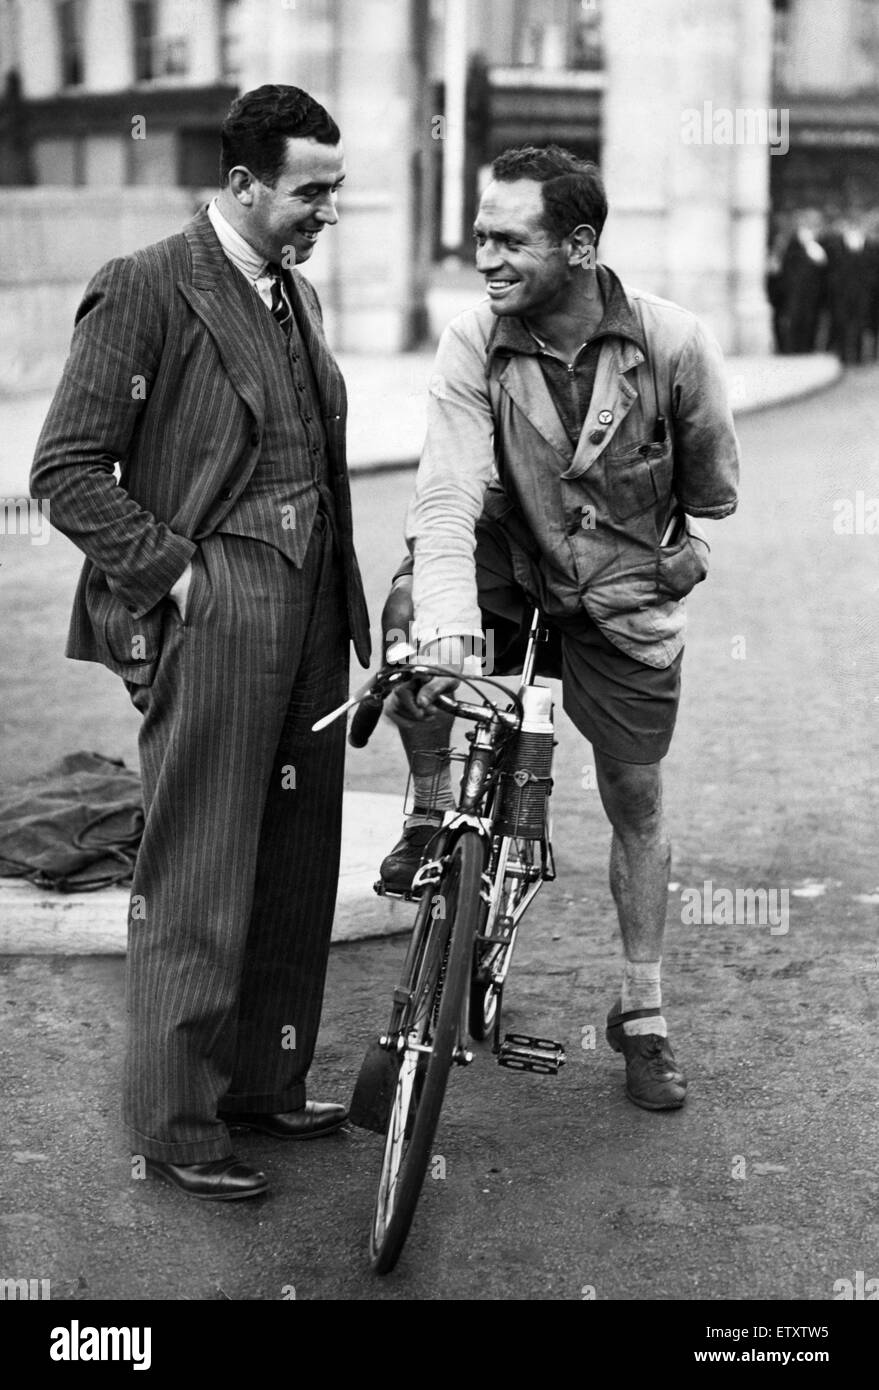 Everton footballer Dixie Dean talking with a cyclist in Liverpool